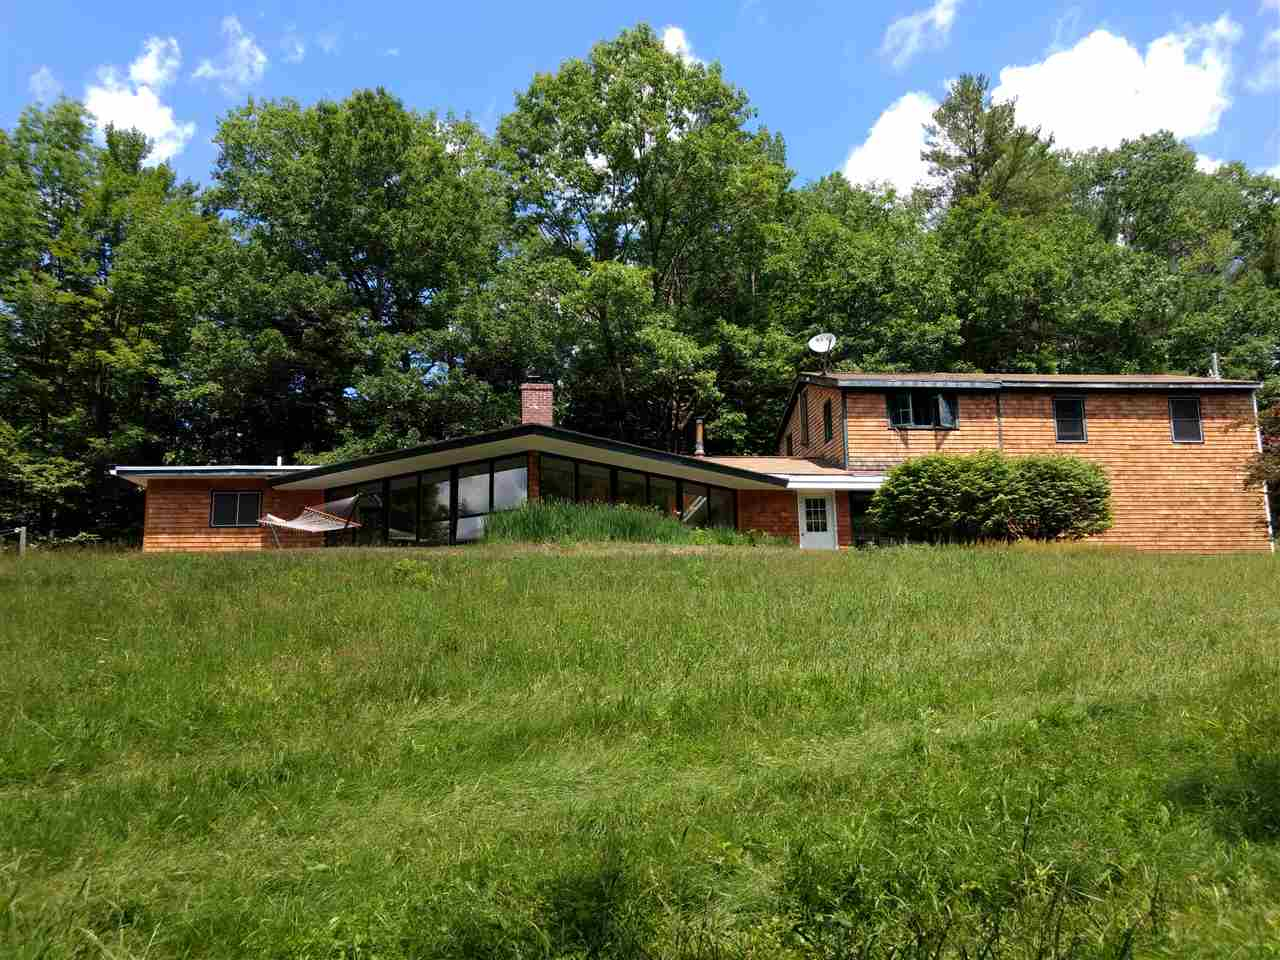 MLS 4704932: 2710 25A, Orford NH